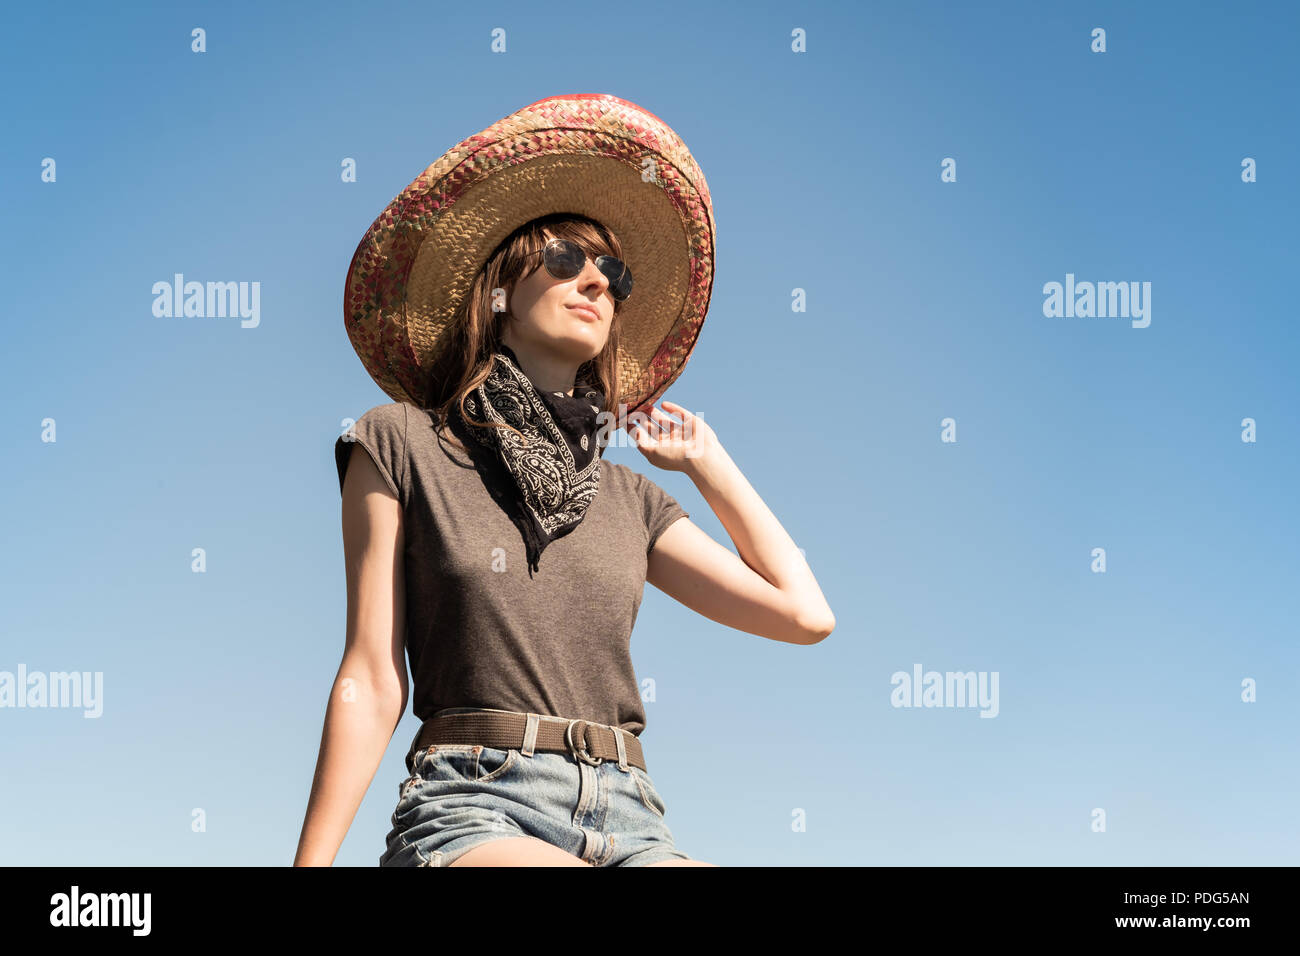 Young beautiful girl in sombrero and bandana dressed up as bandit of gangster. Female person in traditional mexican hat posing as mexico festive symbo - Stock Image